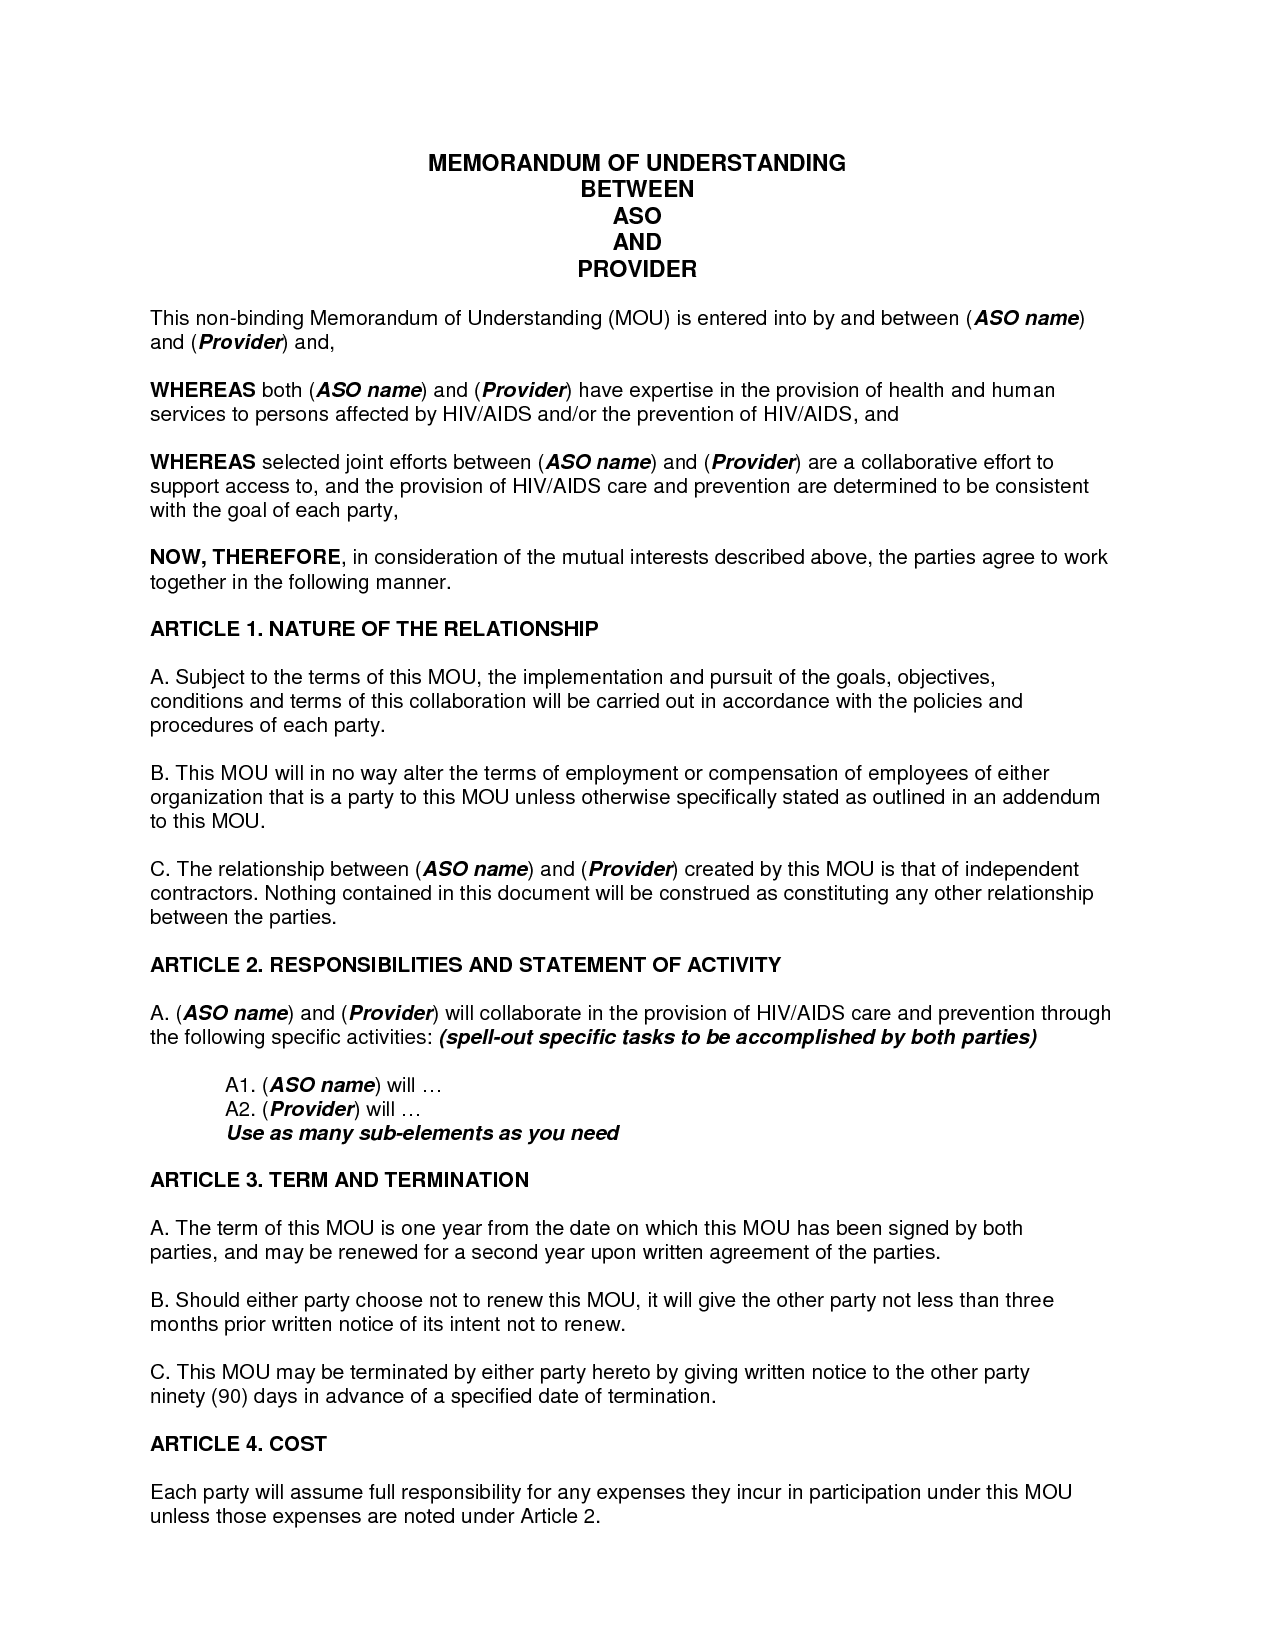 m o u sample Free Printable Documents Memorandum